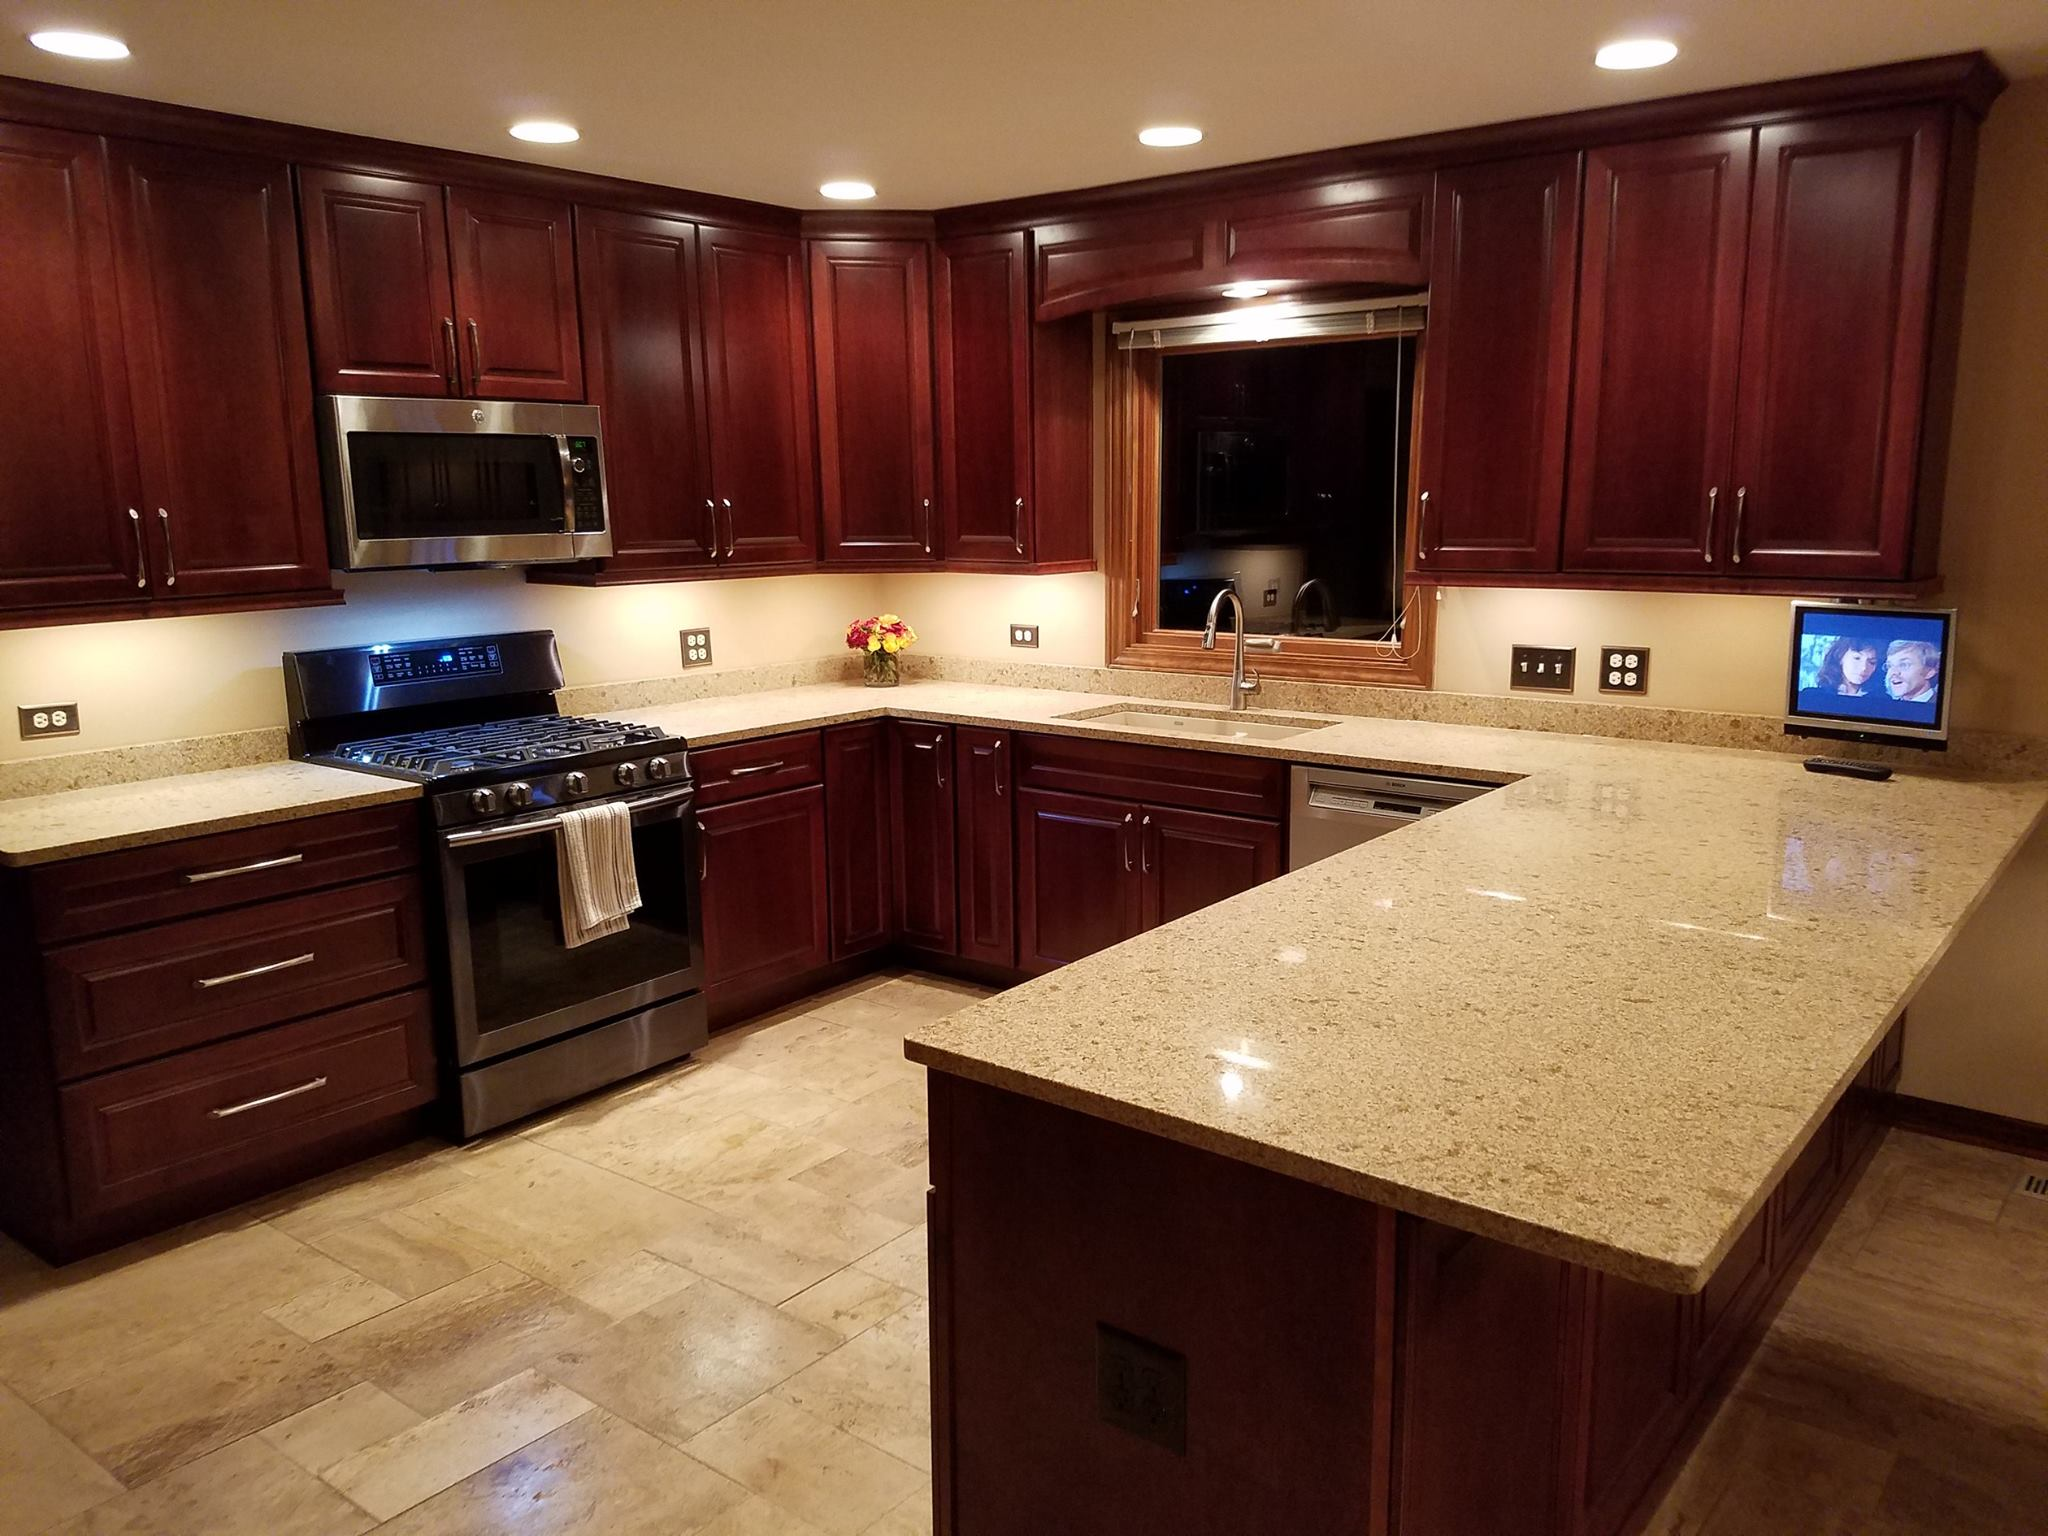 basement remodeling naperville il. Beautiful Kitchen Remodeling In Naperville! Basement Naperville Il